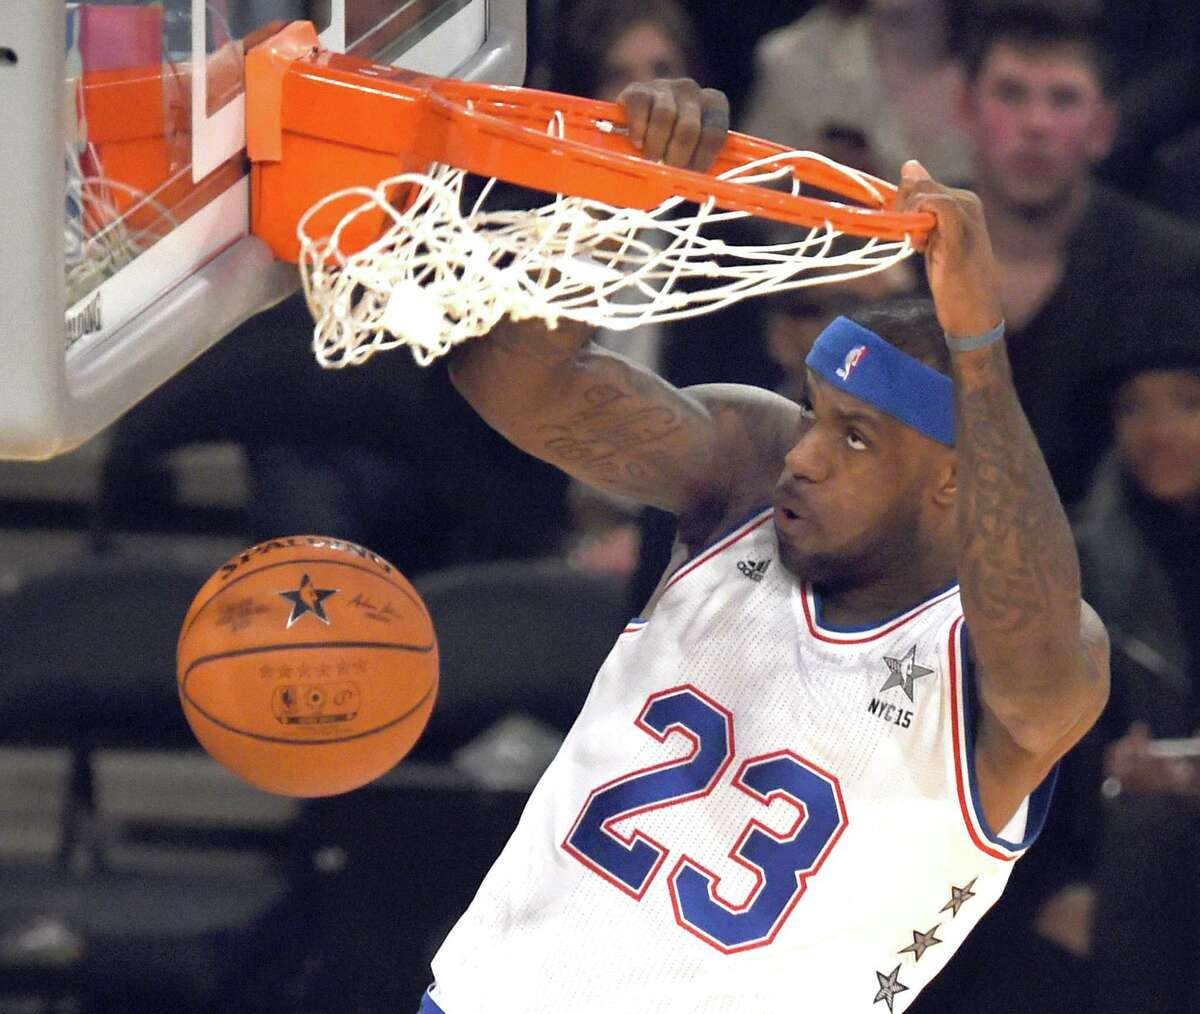 East NBA All Star LeBron James (Cavaliers) scores during the 64th NBA All-Star Game at Madison Square Garden in New York February 15, 2015. AFP PHOTO / TIMOTHY A. CLARYTIMOTHY A. CLARY/AFP/Getty Images ORG XMIT: 527095531